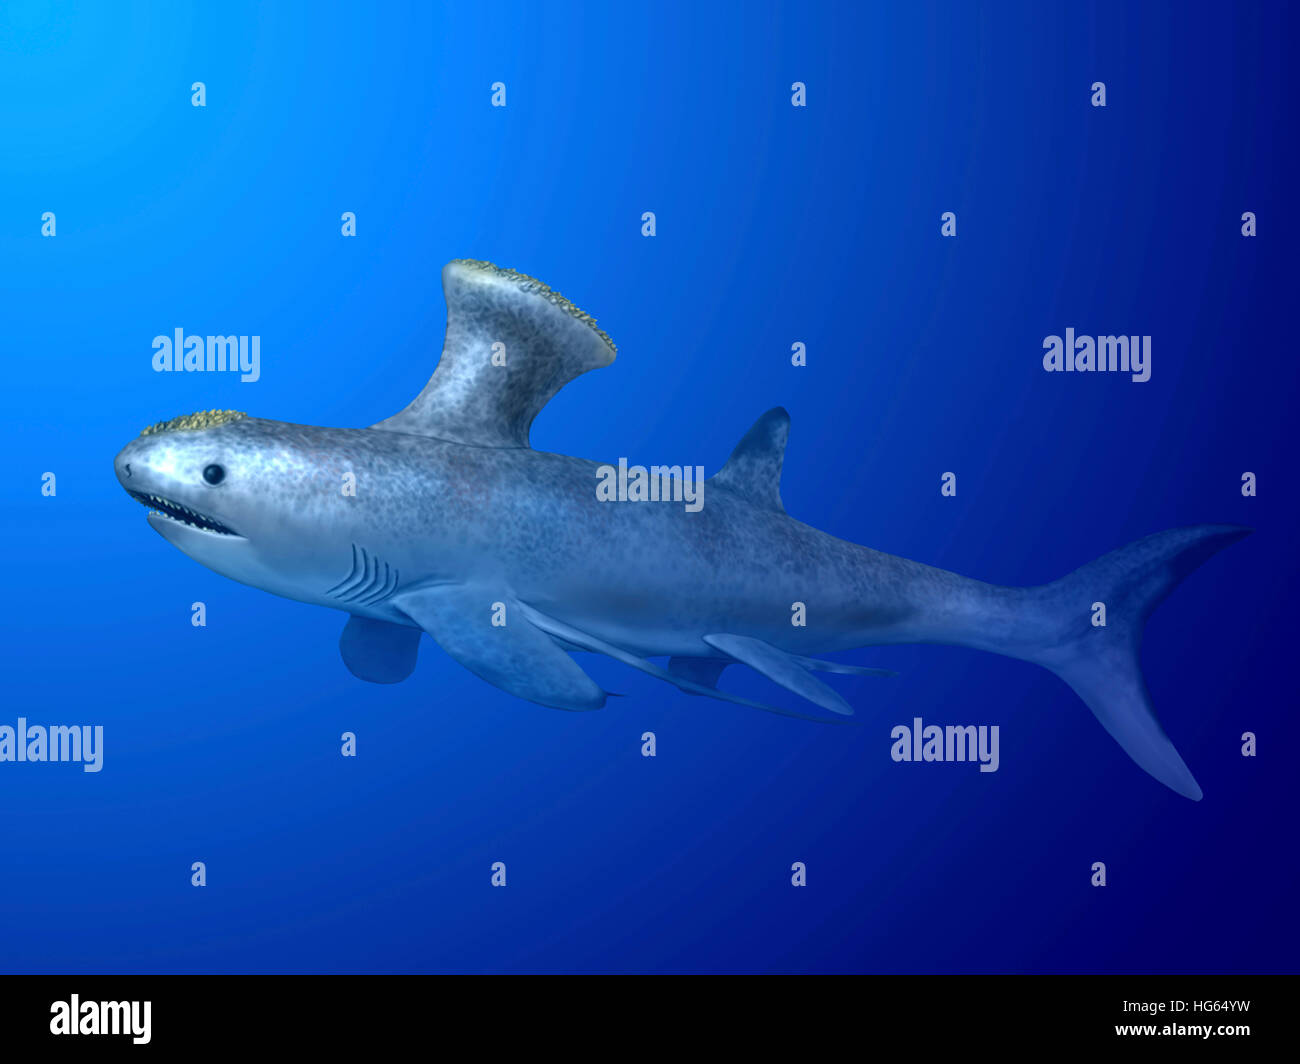 Akmonistion is an extinct shark from the Early Carboniferous period. - Stock Image